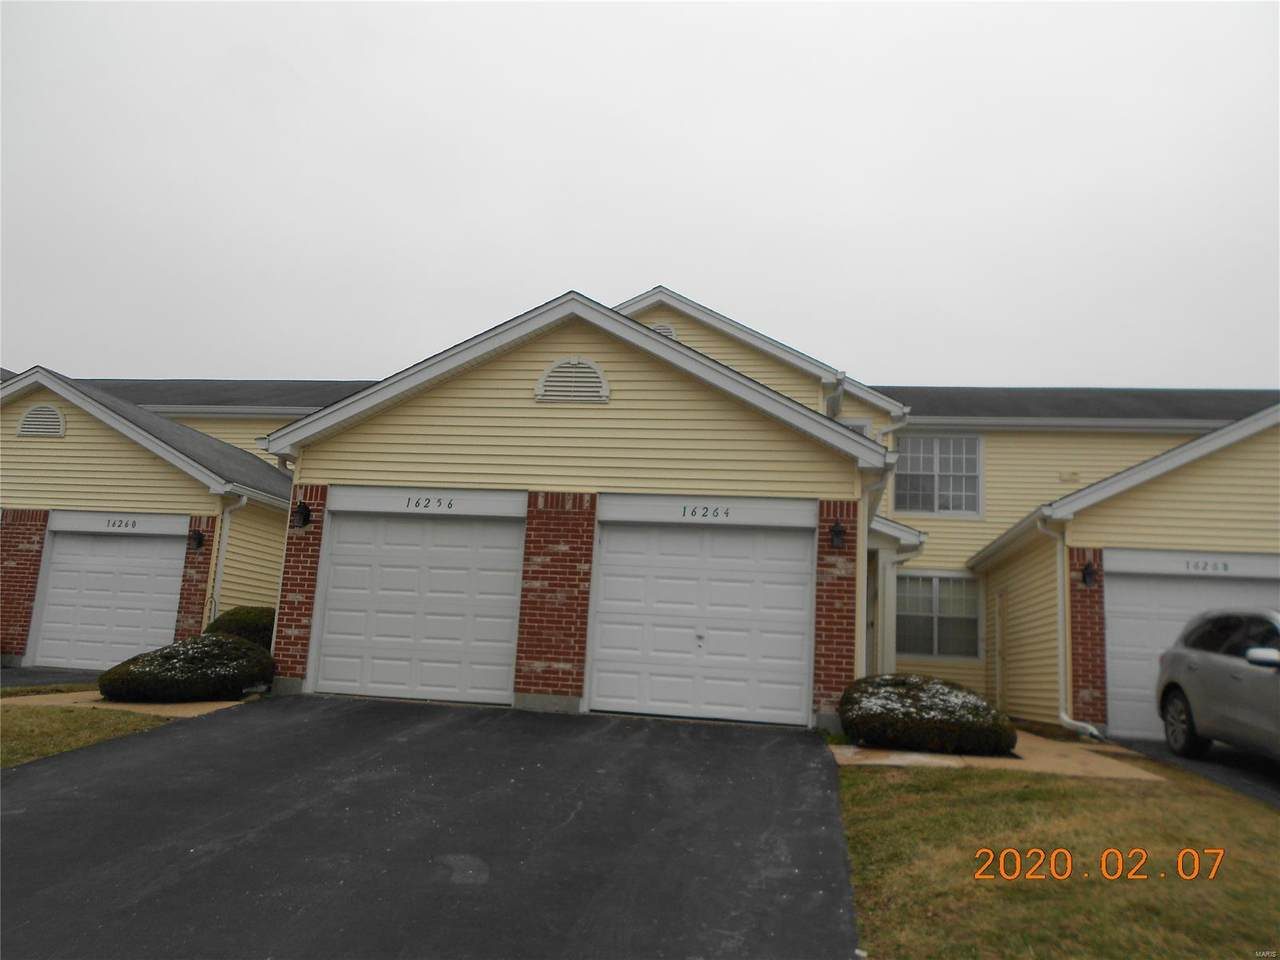 16264 Rose Wreath Lane - Photo 1